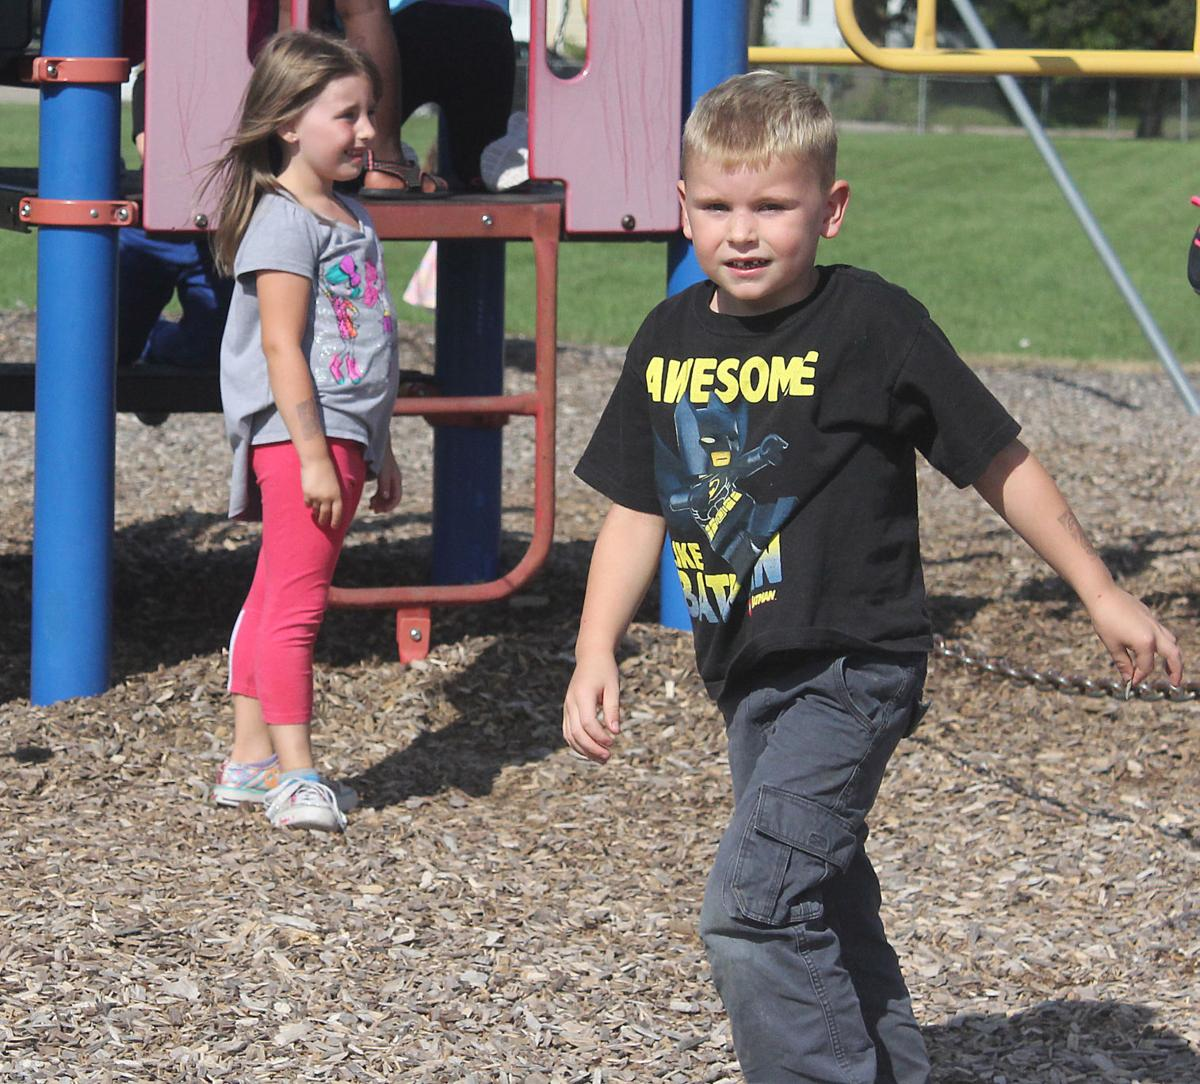 Kids Need Play And Recess Their Mental >> Beyond The Classroom Schools Find Value In Recess Regional News